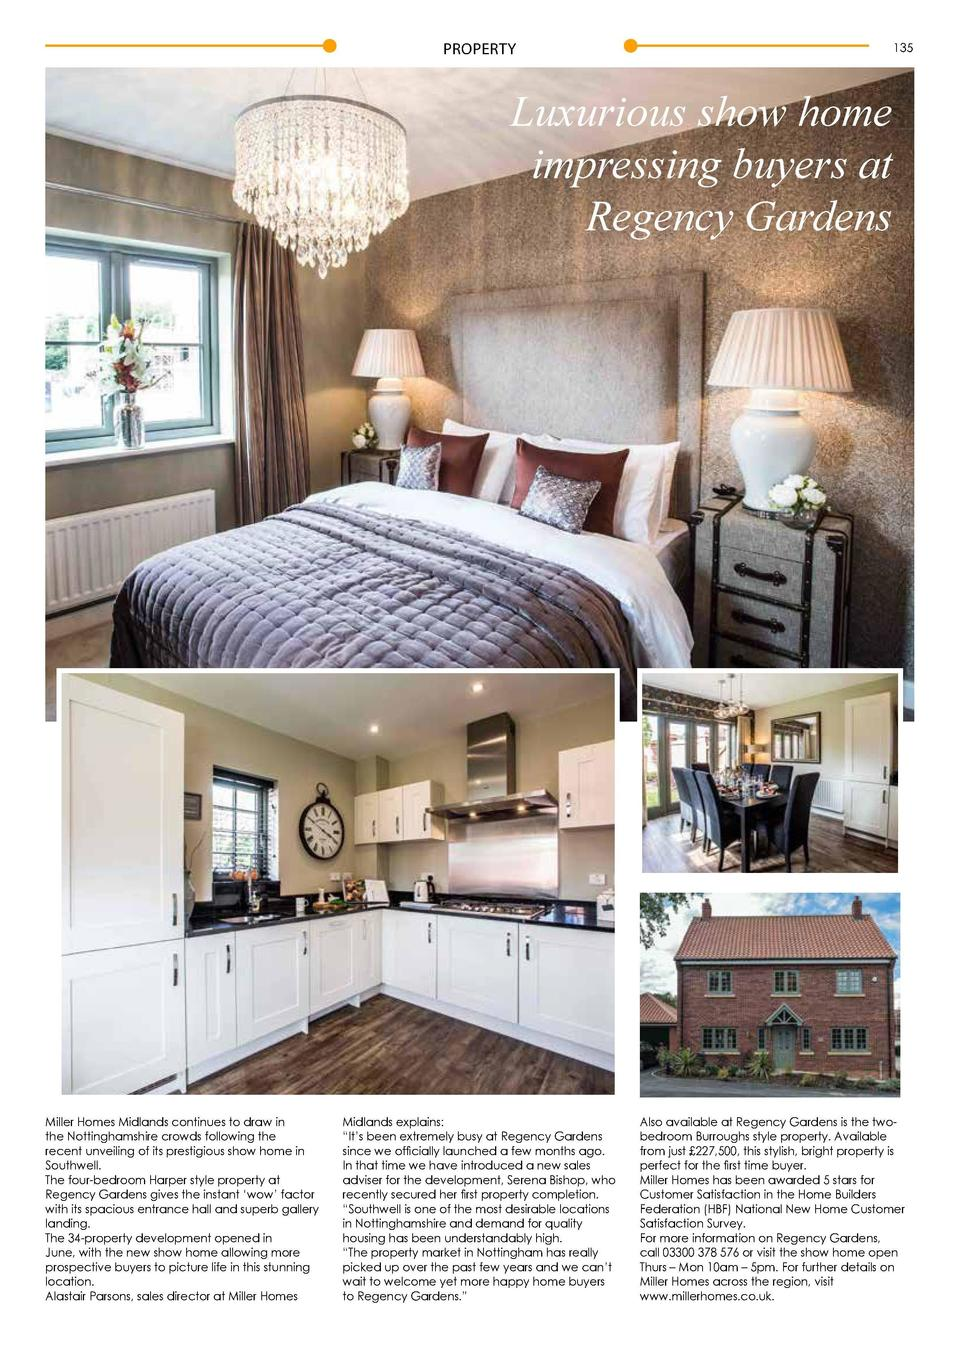 PROPERTY  134  135  Luxurious show home impressing buyers at Regency Gardens  Miller Homes Midlands continues to draw in t...